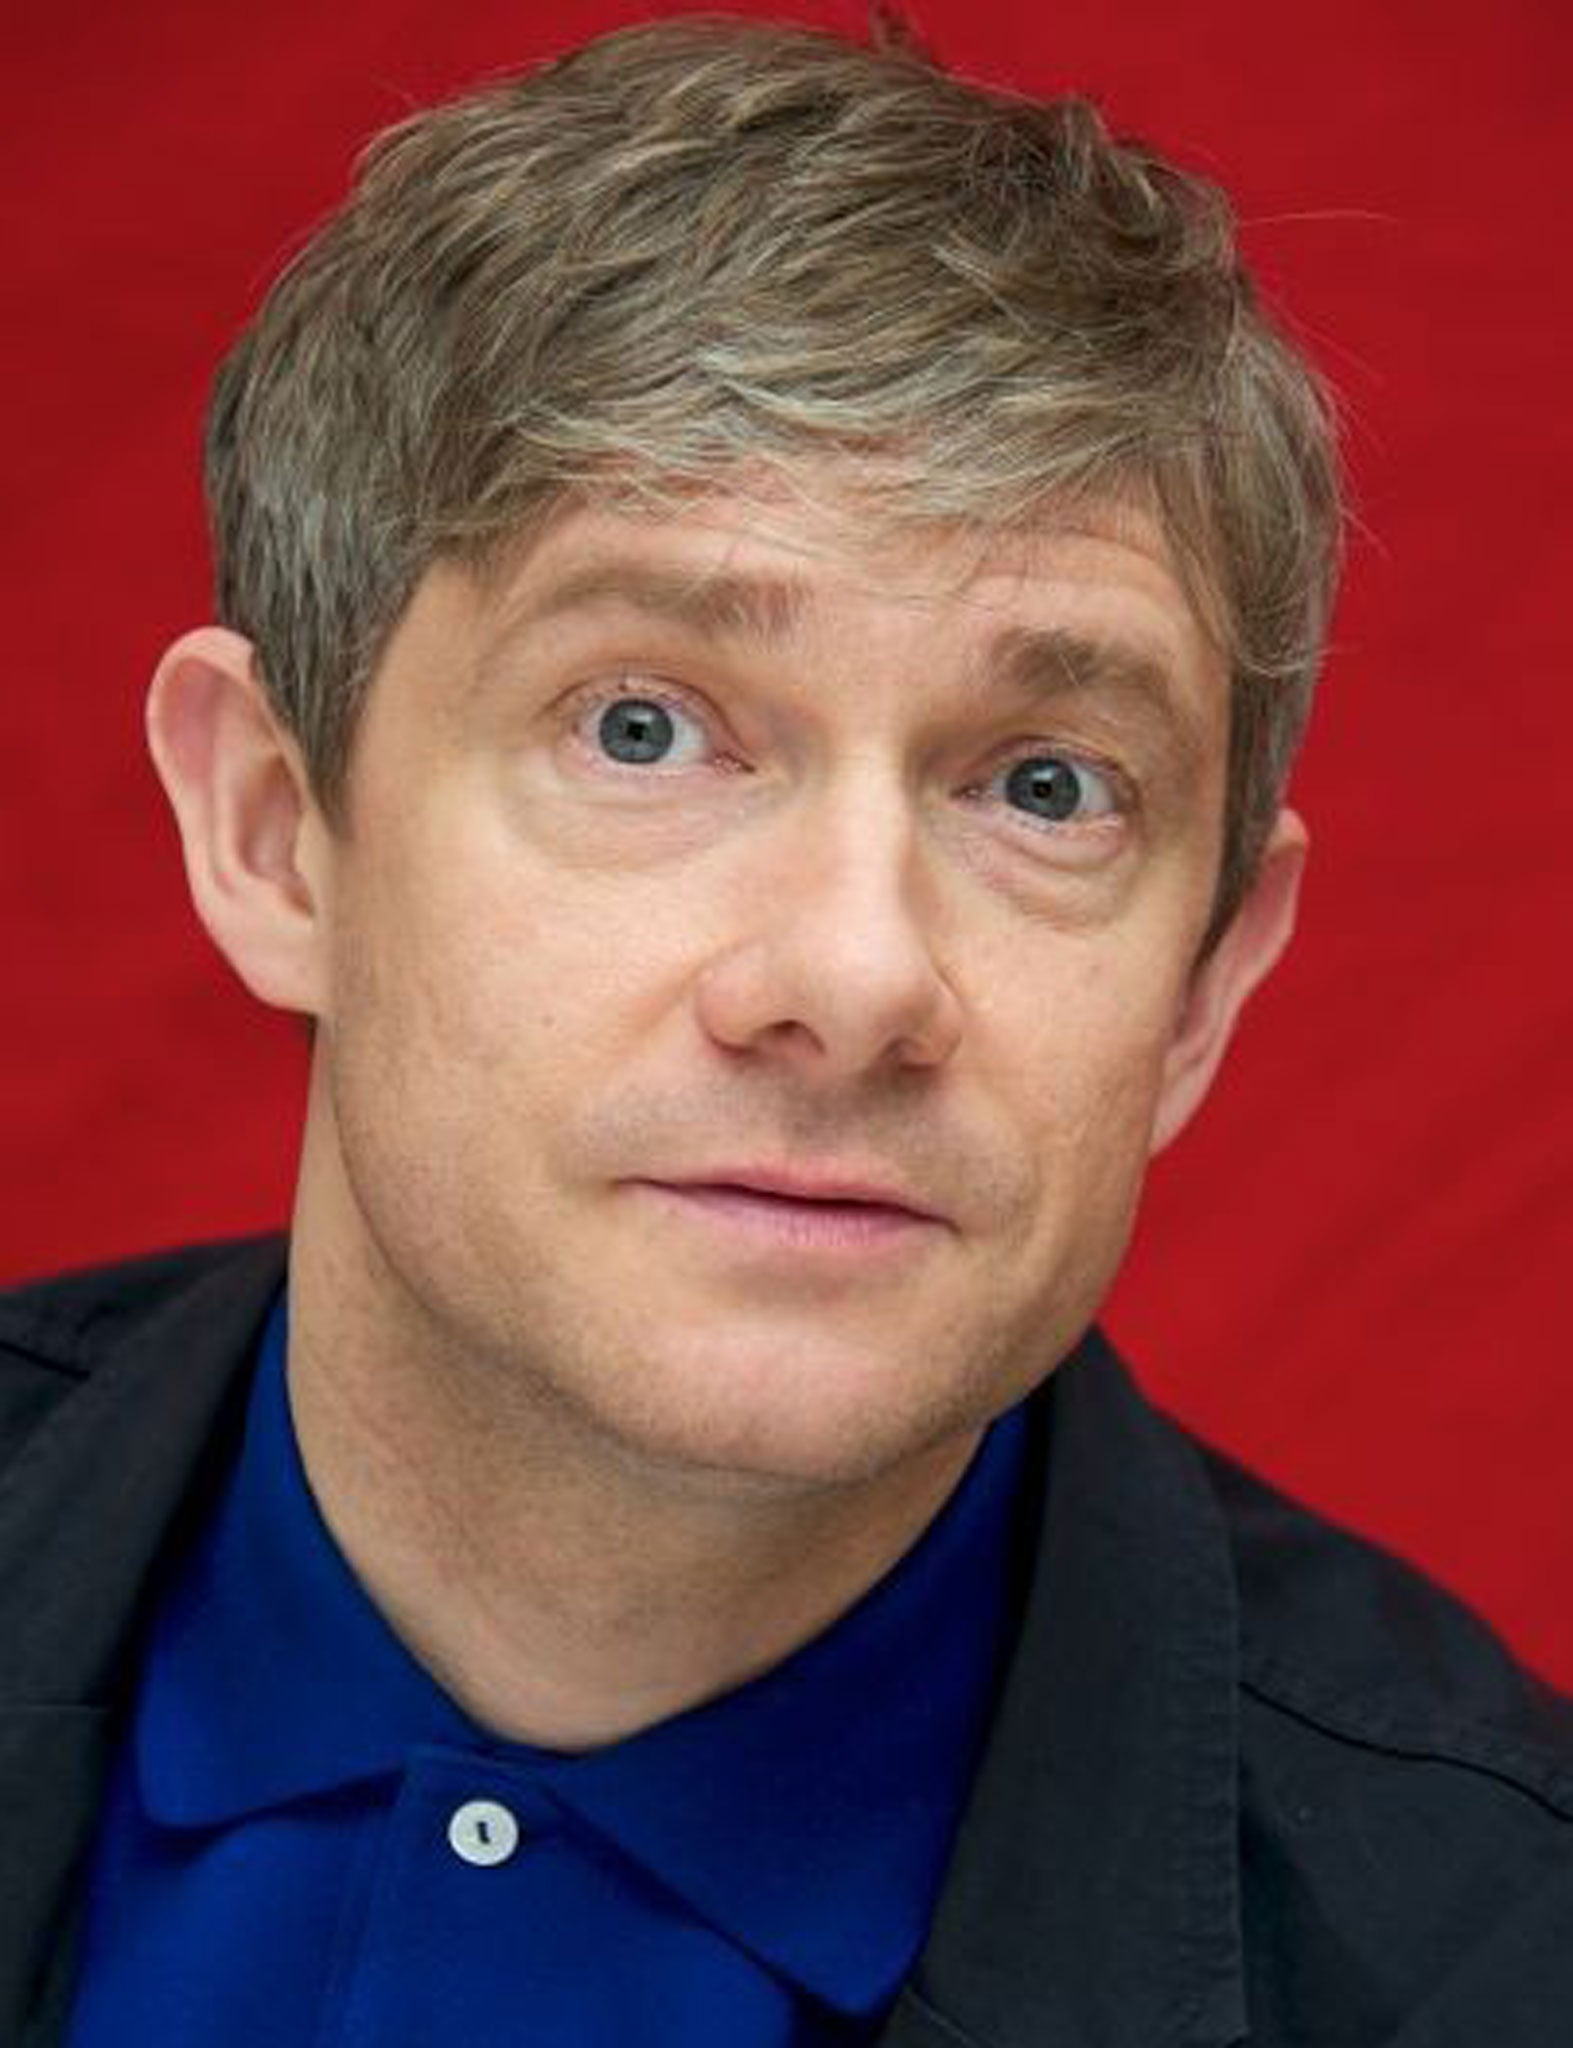 martin freeman richard iiimartin freeman and amanda abbington, martin freeman height, martin freeman twitter, martin freeman gif, martin freeman interview, martin freeman tumblr, martin freeman 2016, martin freeman benedict cumberbatch, martin freeman hobbit, martin freeman marvel, martin freeman sherlock, martin freeman richard iii, martin freeman wiki, martin freeman and his wife, martin freeman vk, martin freeman son, martin freeman family, martin freeman kinopoisk, martin freeman ali g, martin freeman imdb